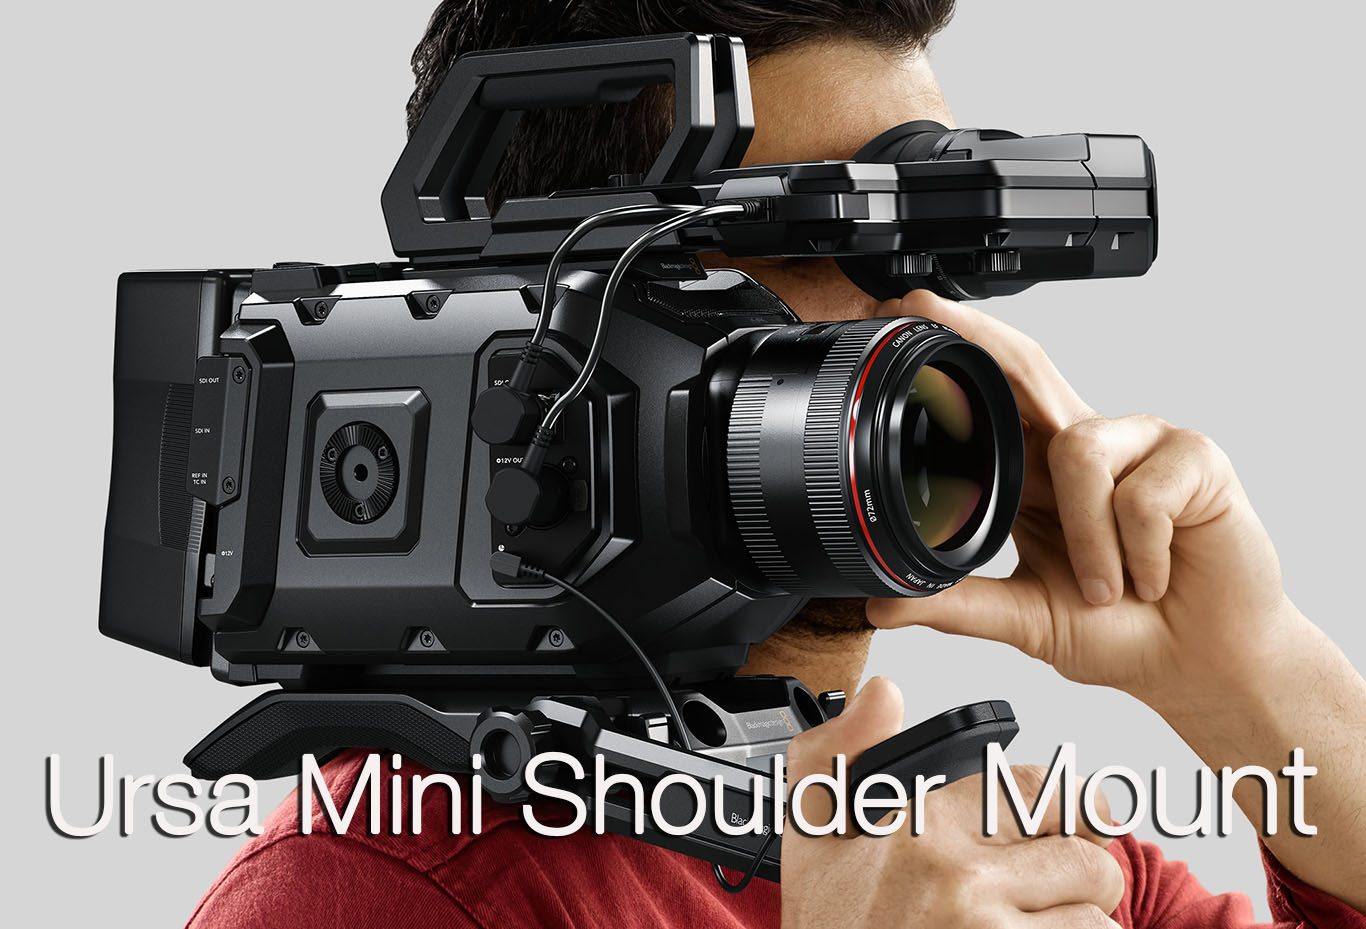 Ursa Mini Shoulder Mount